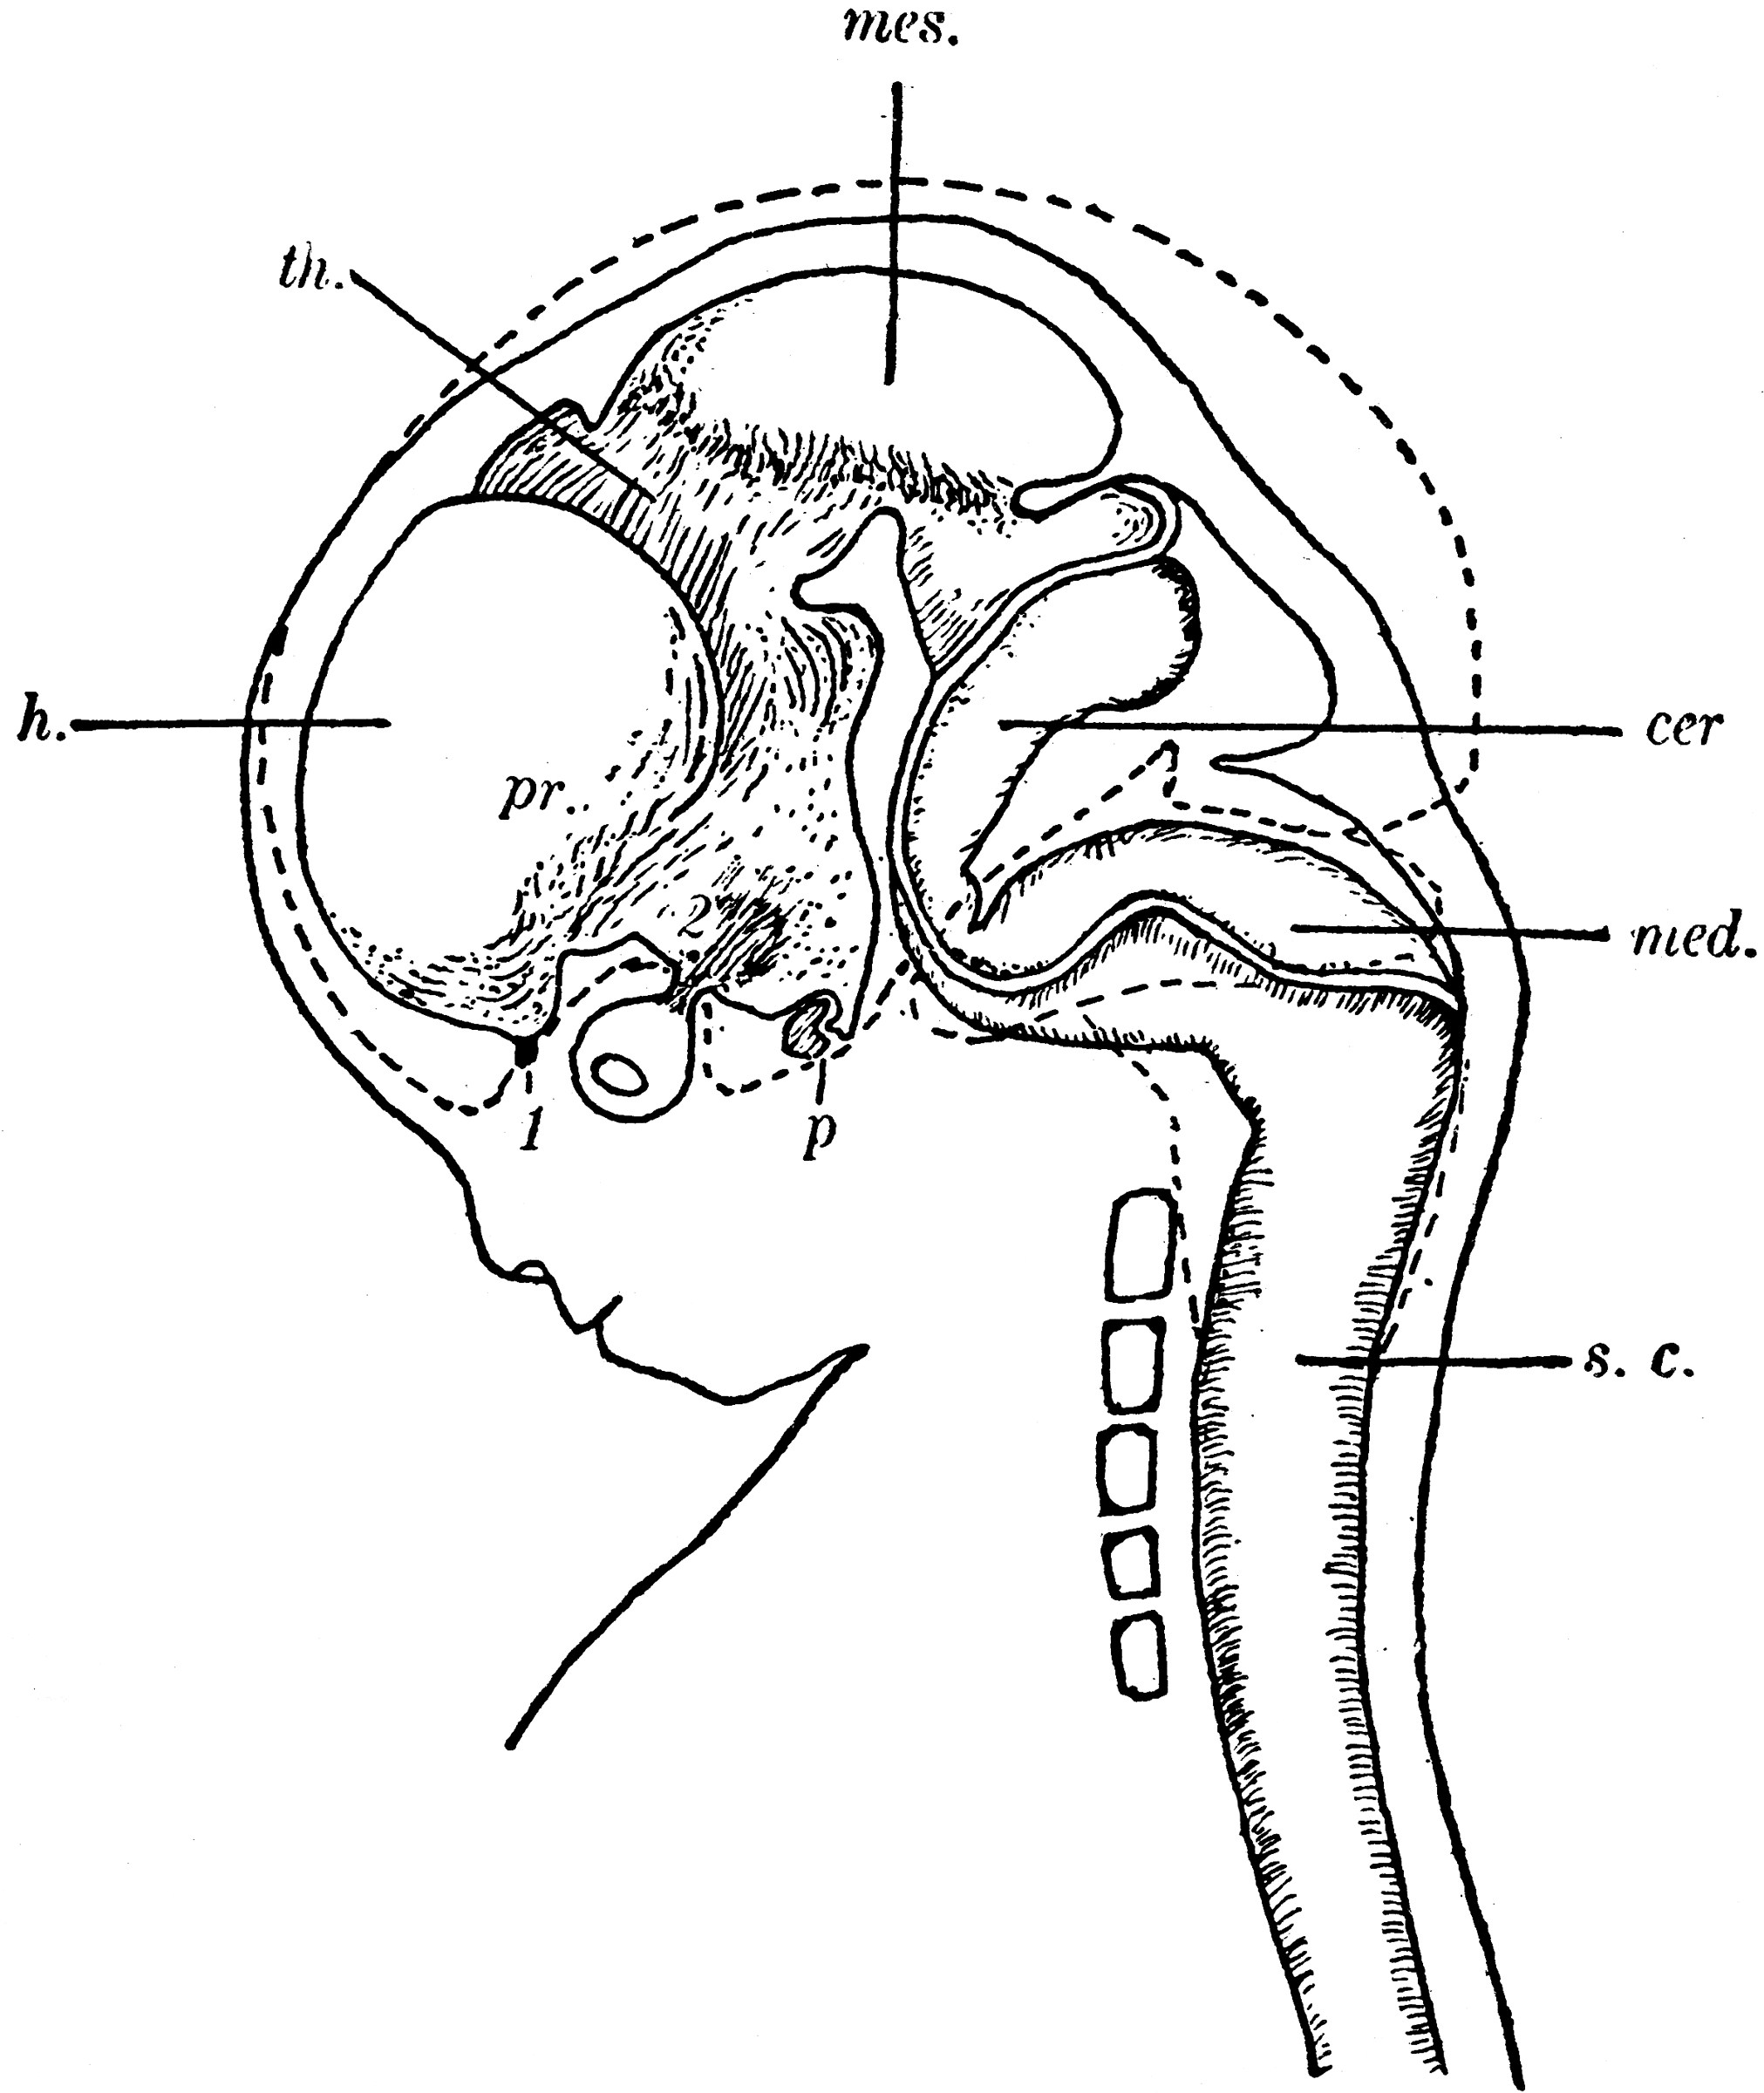 Labeled Spinal Cord Diagram Human Fetus Clipart Etc